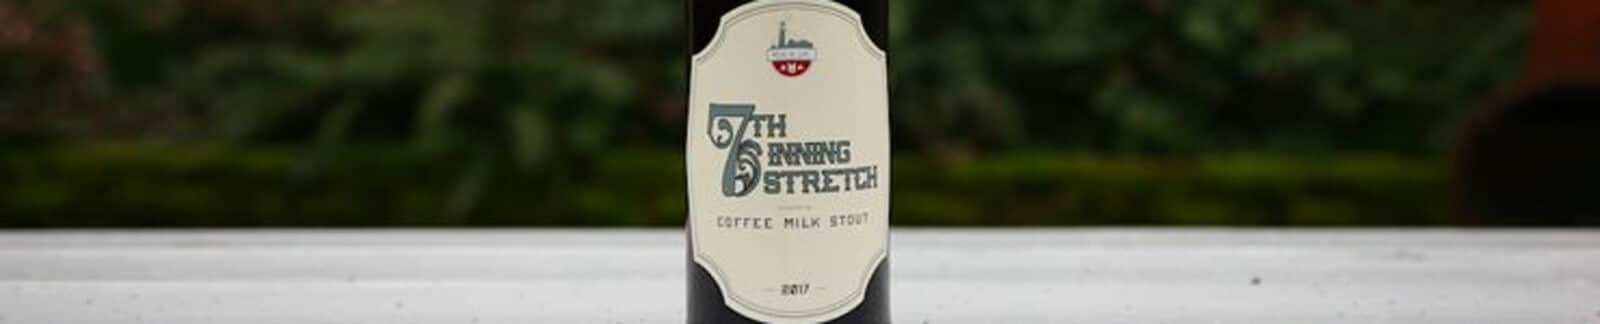 7th Inning Stretch Coffee Milk Stout header